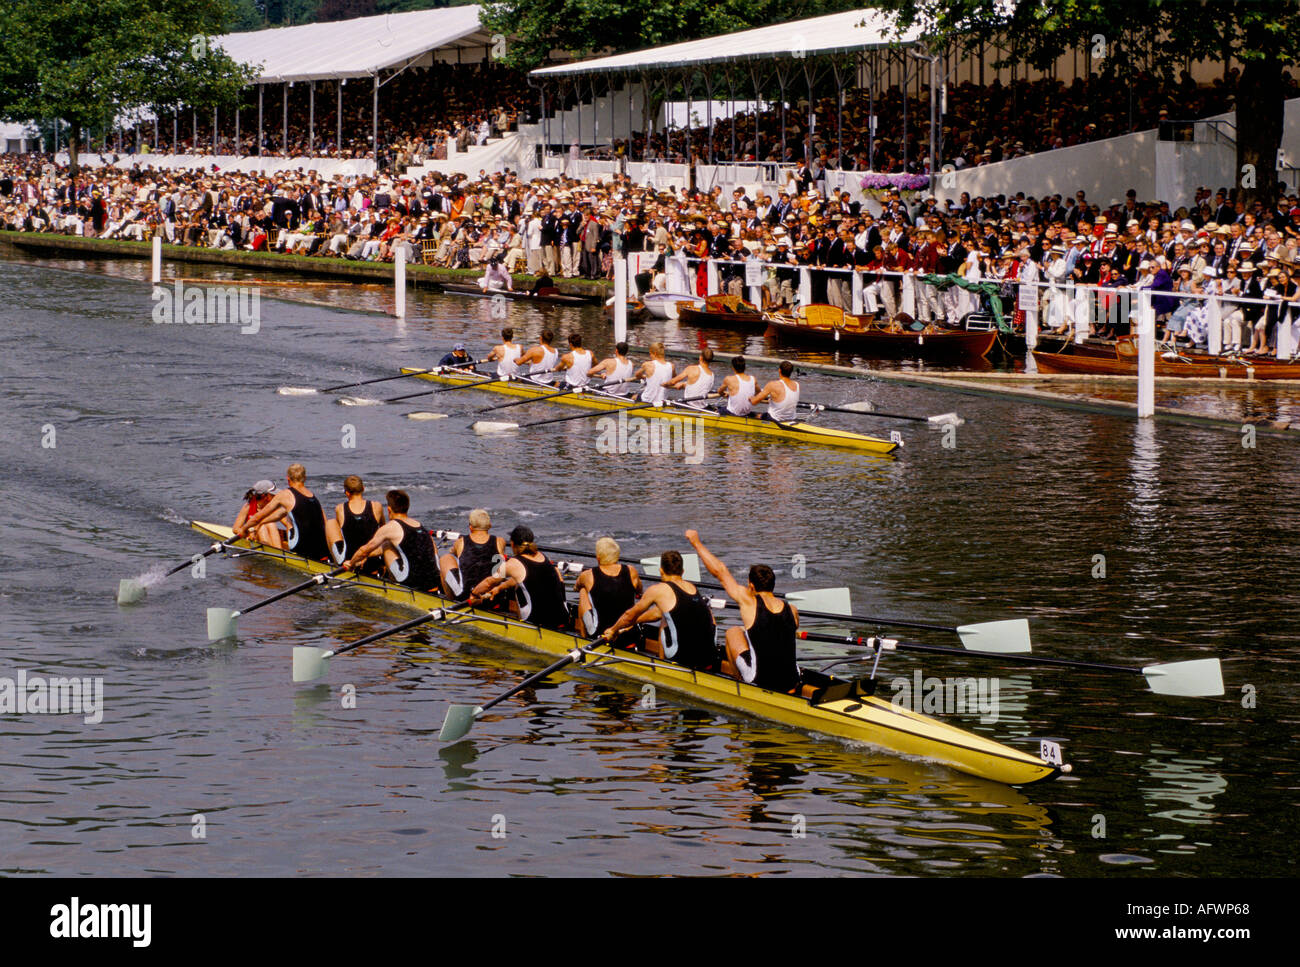 Henley Royal Regatta. Henley on Thames crowds watch   the boat  race  from the stands riverbank. Berkshire   HOMER Stock Photo